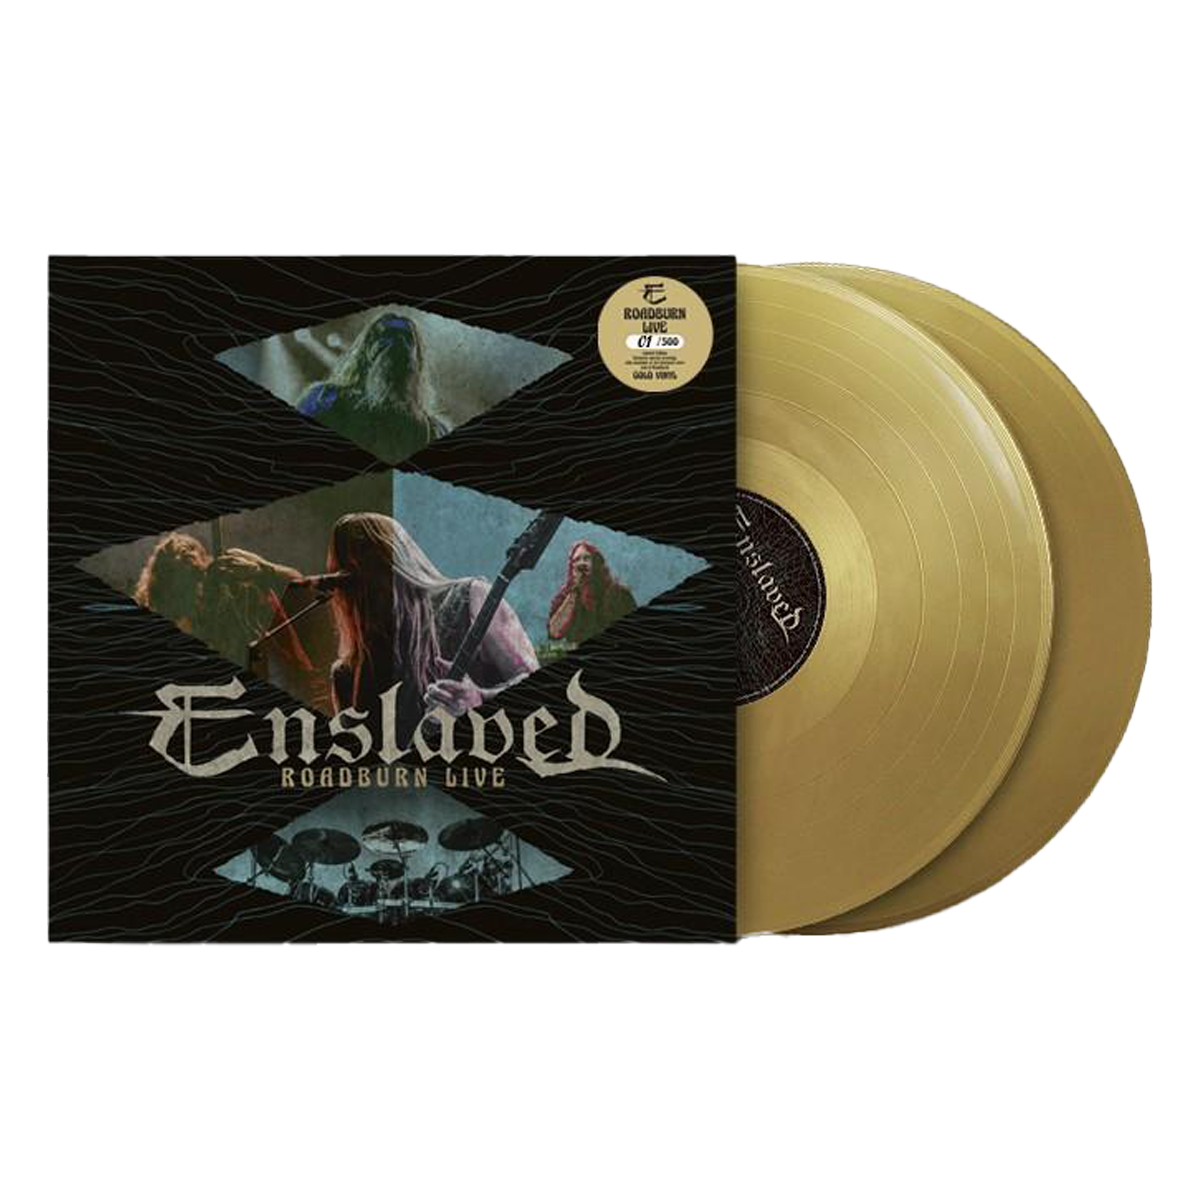 Enslaved - Roadburn Live 2xLP Gold (RSD Edition)